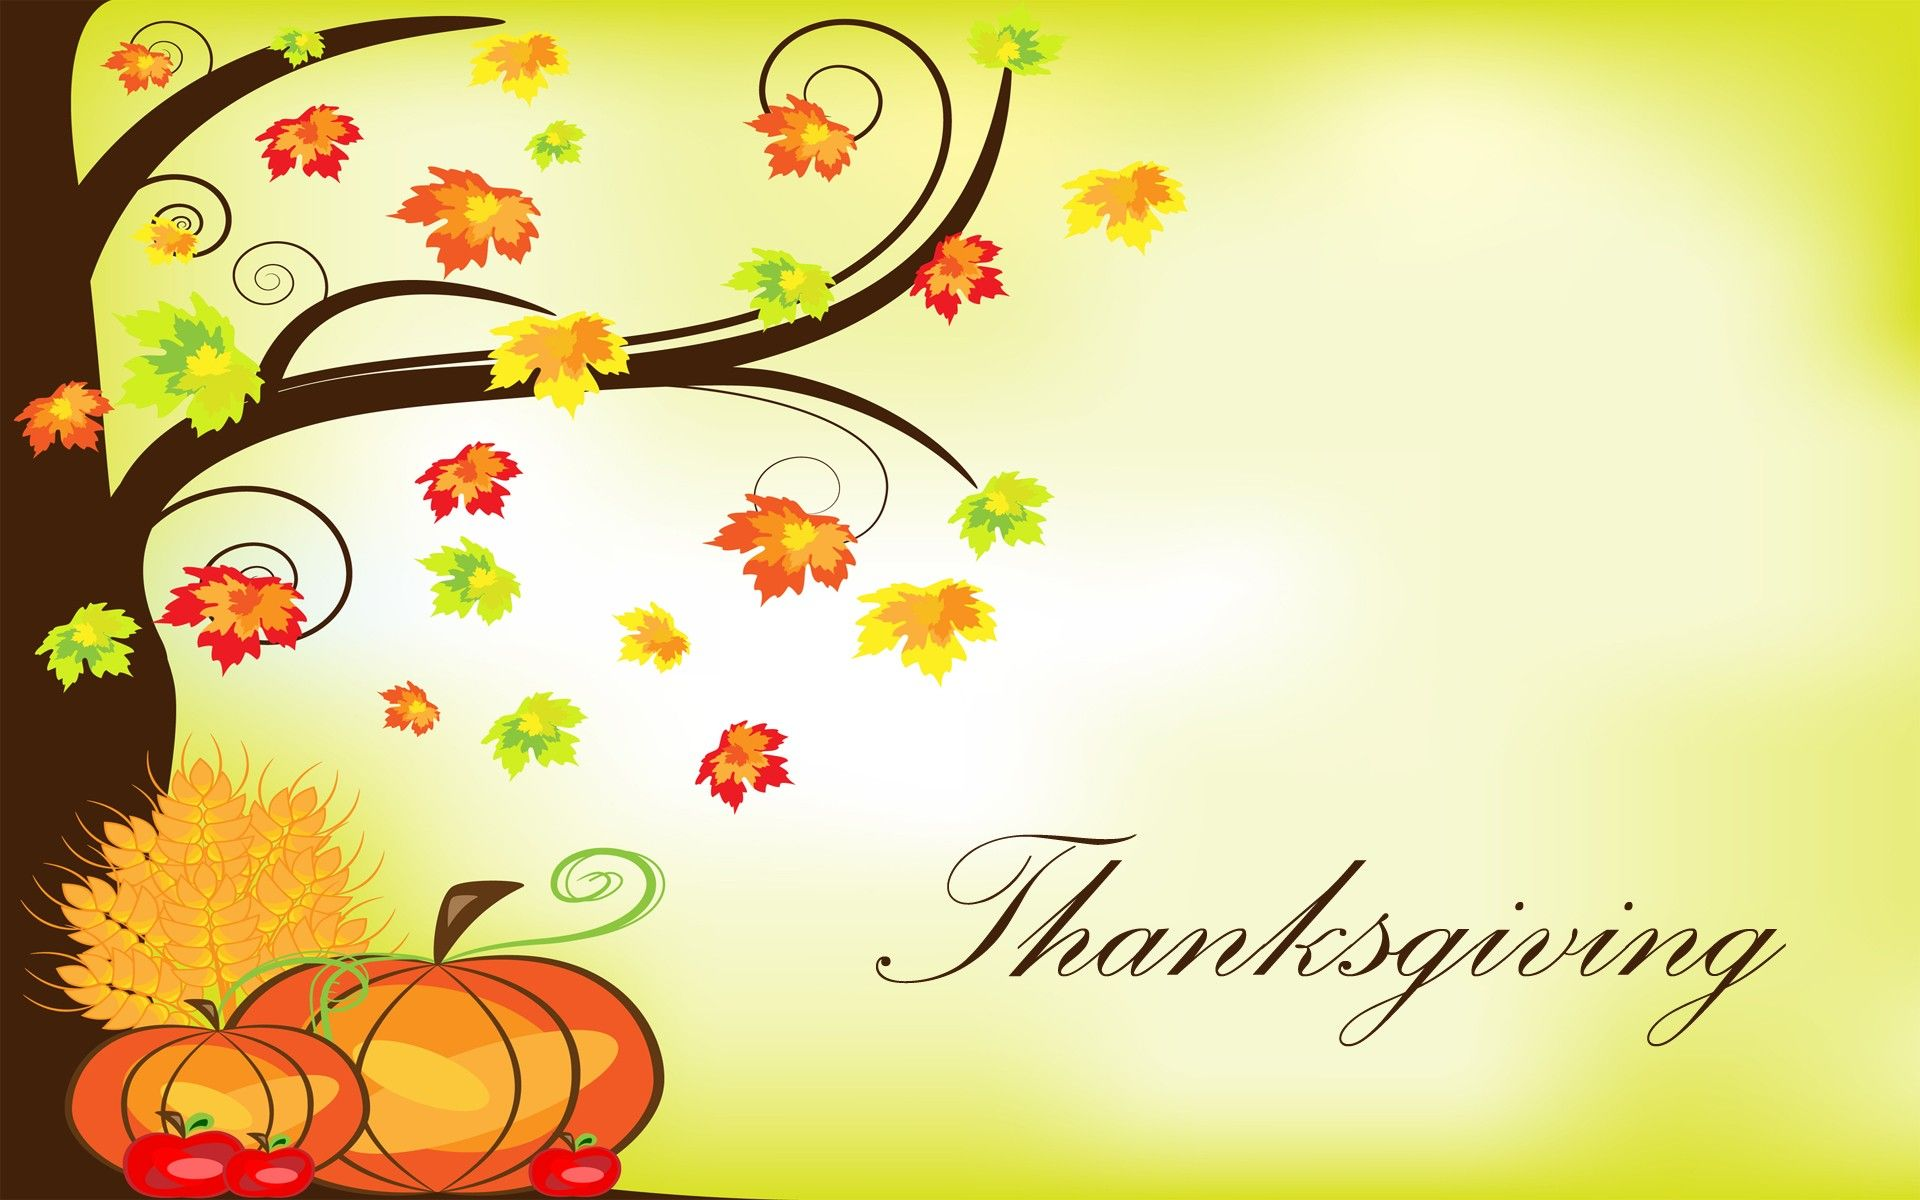 Happy Thanksgiving Wishes With Images Thanksgiving Images